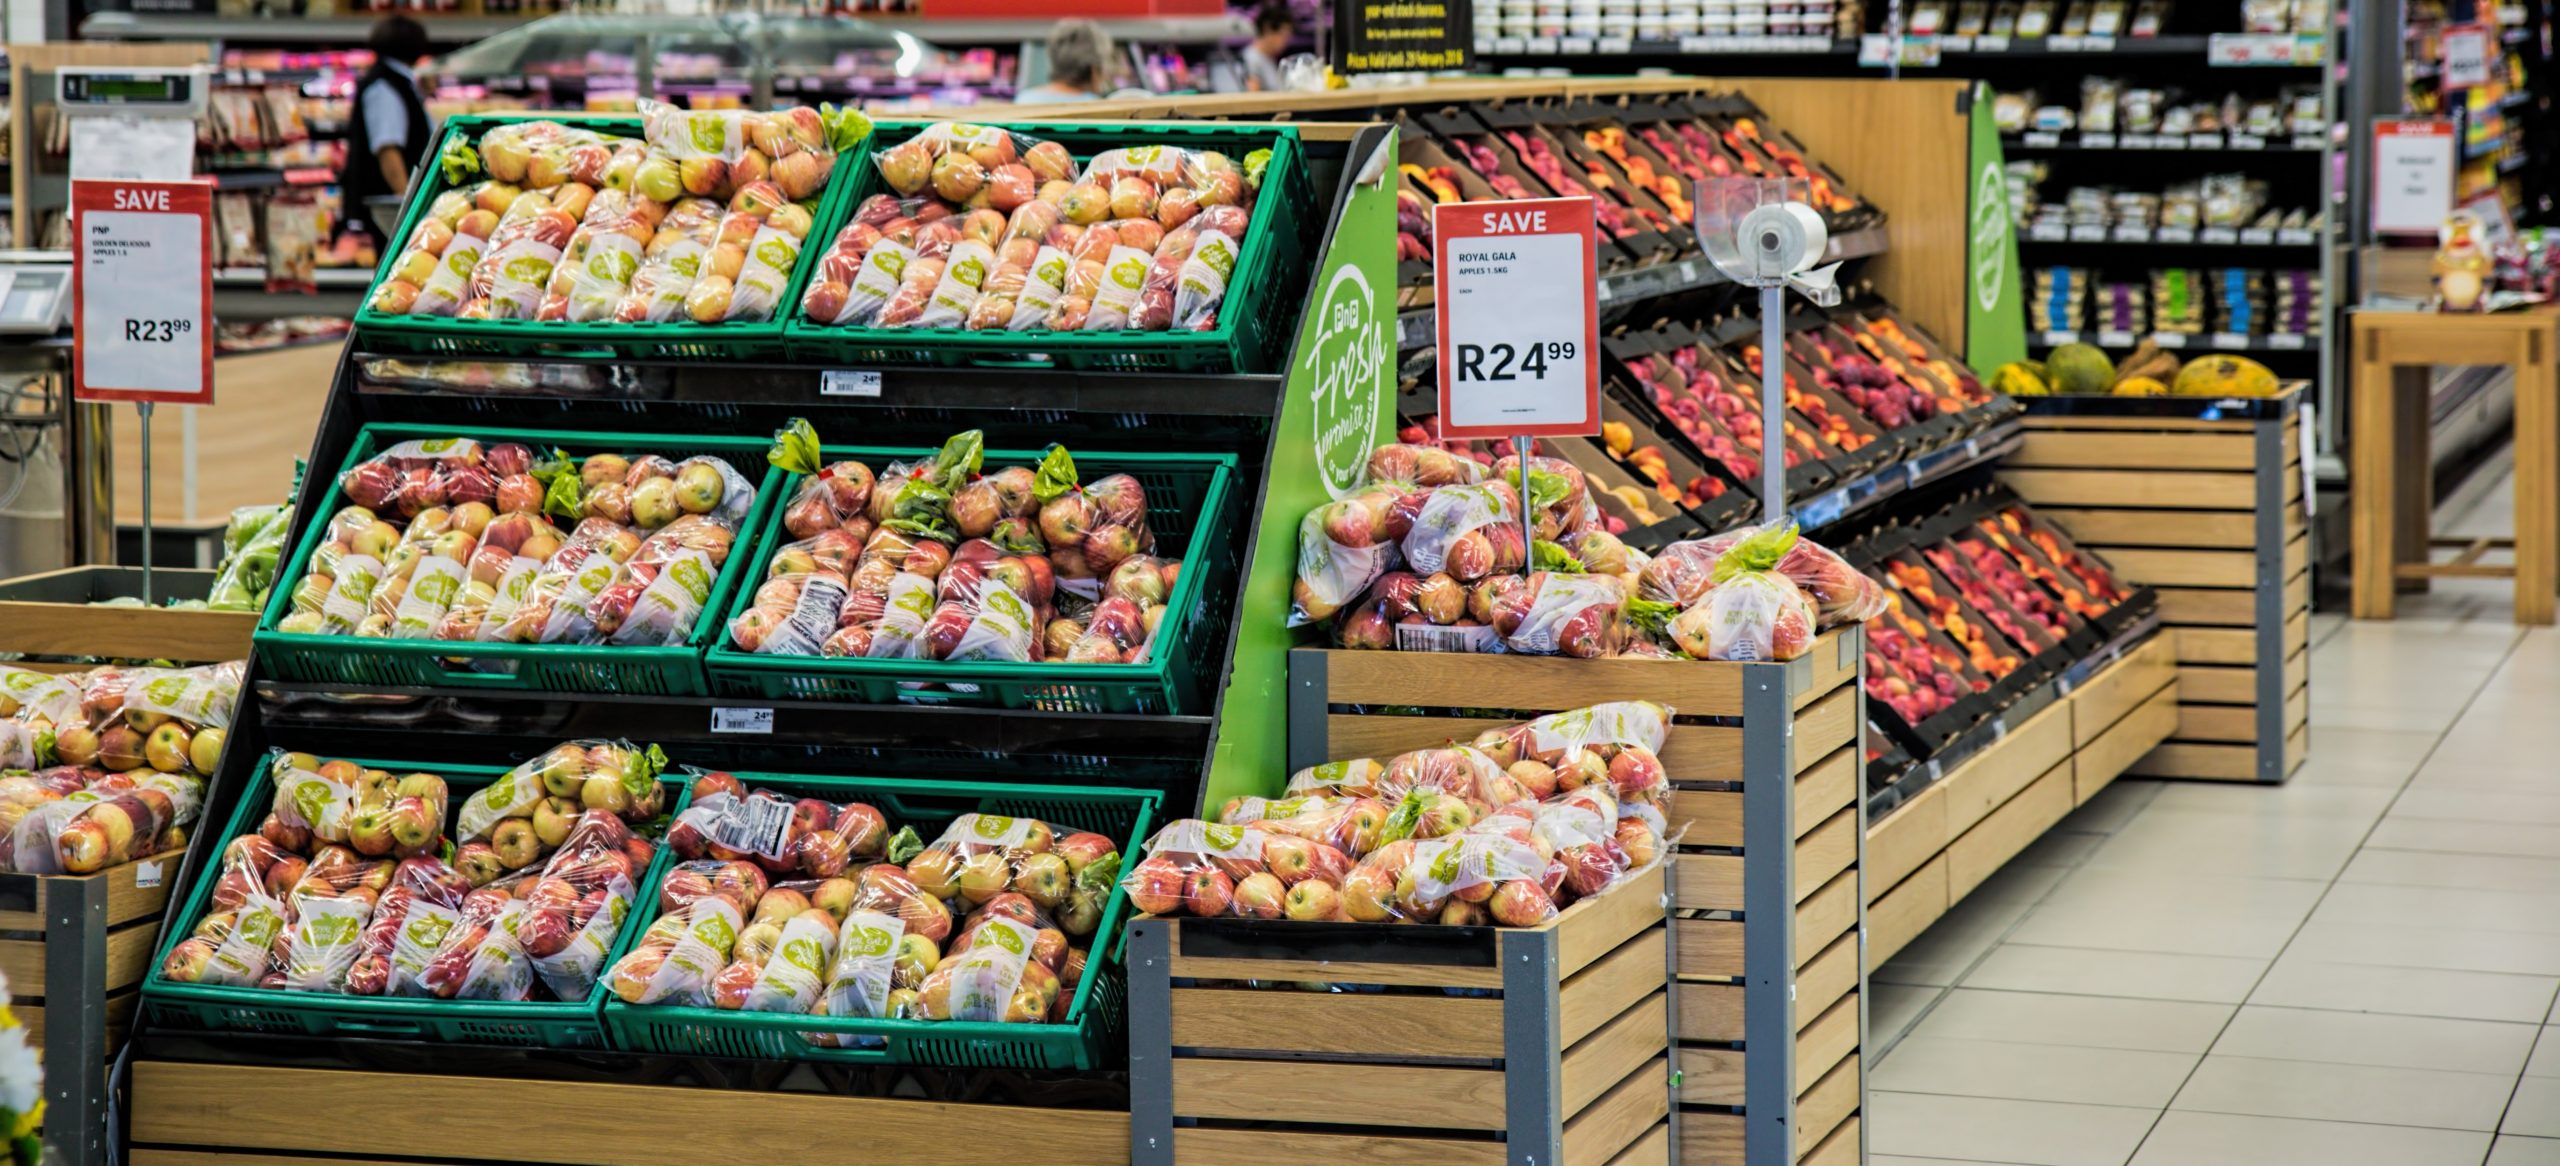 Grocery, Store, Apples, Food, Monitoring, Alerting